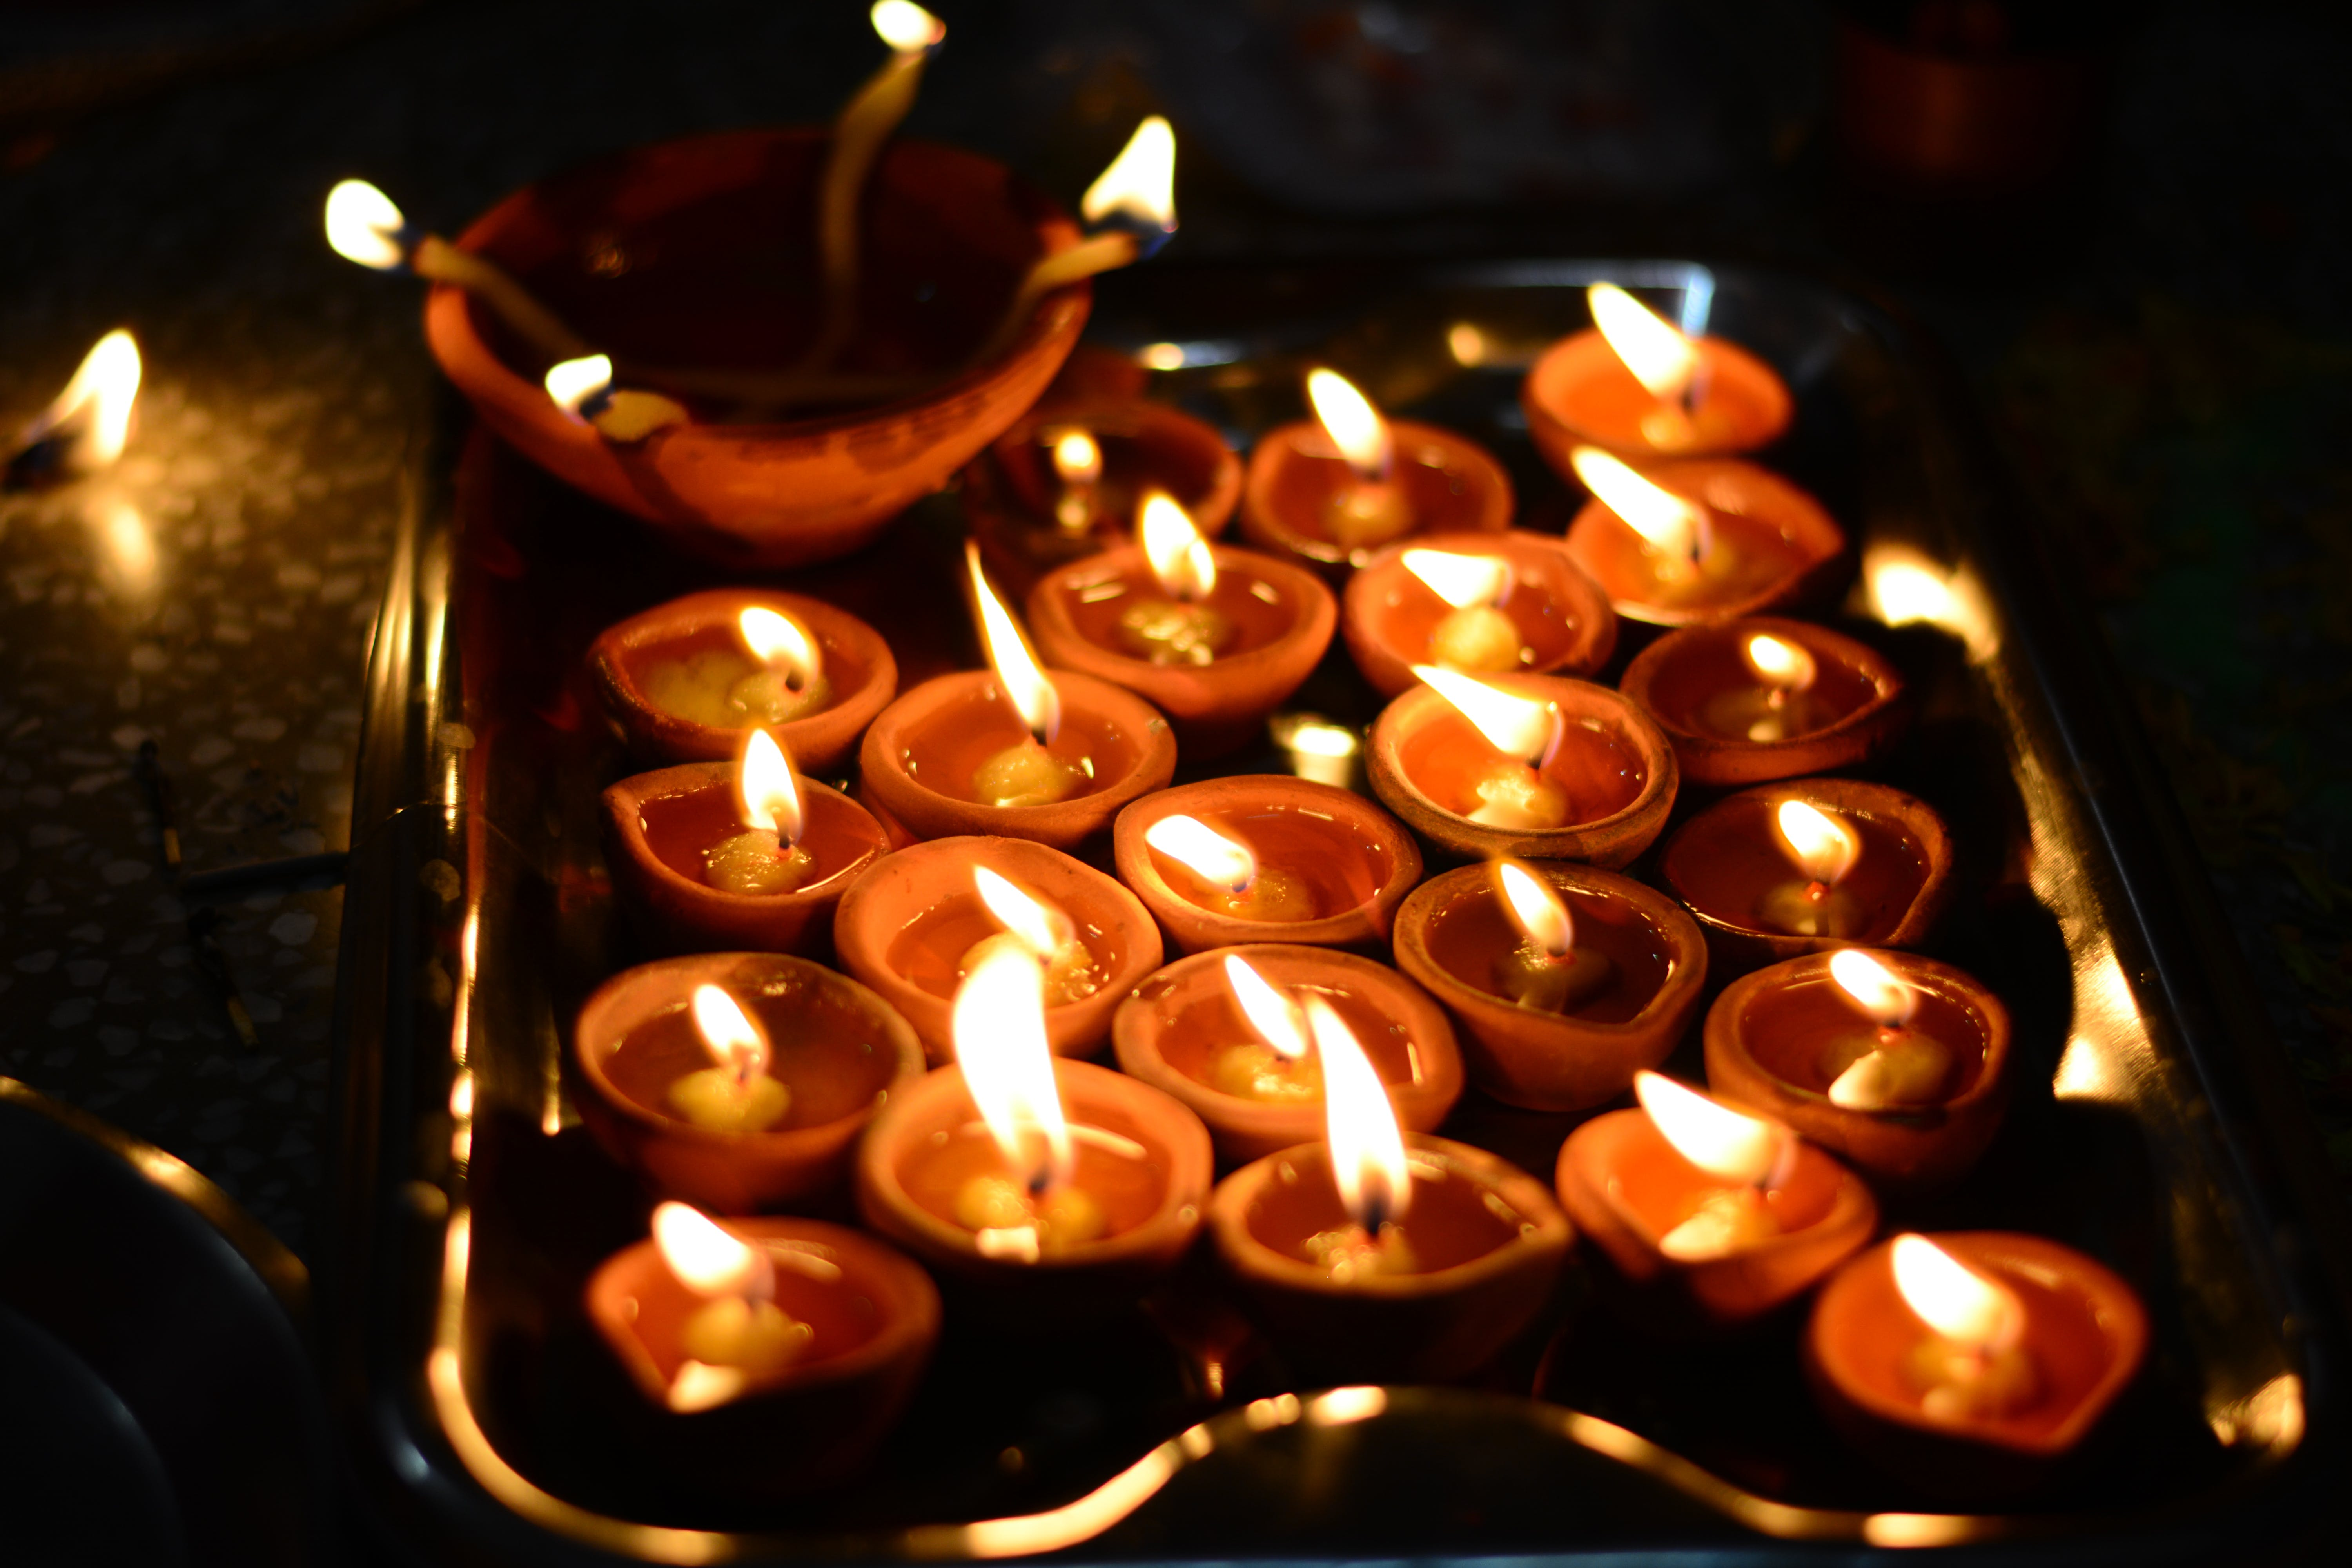 Photo of Tealight Candles on Stainless Steel Tray